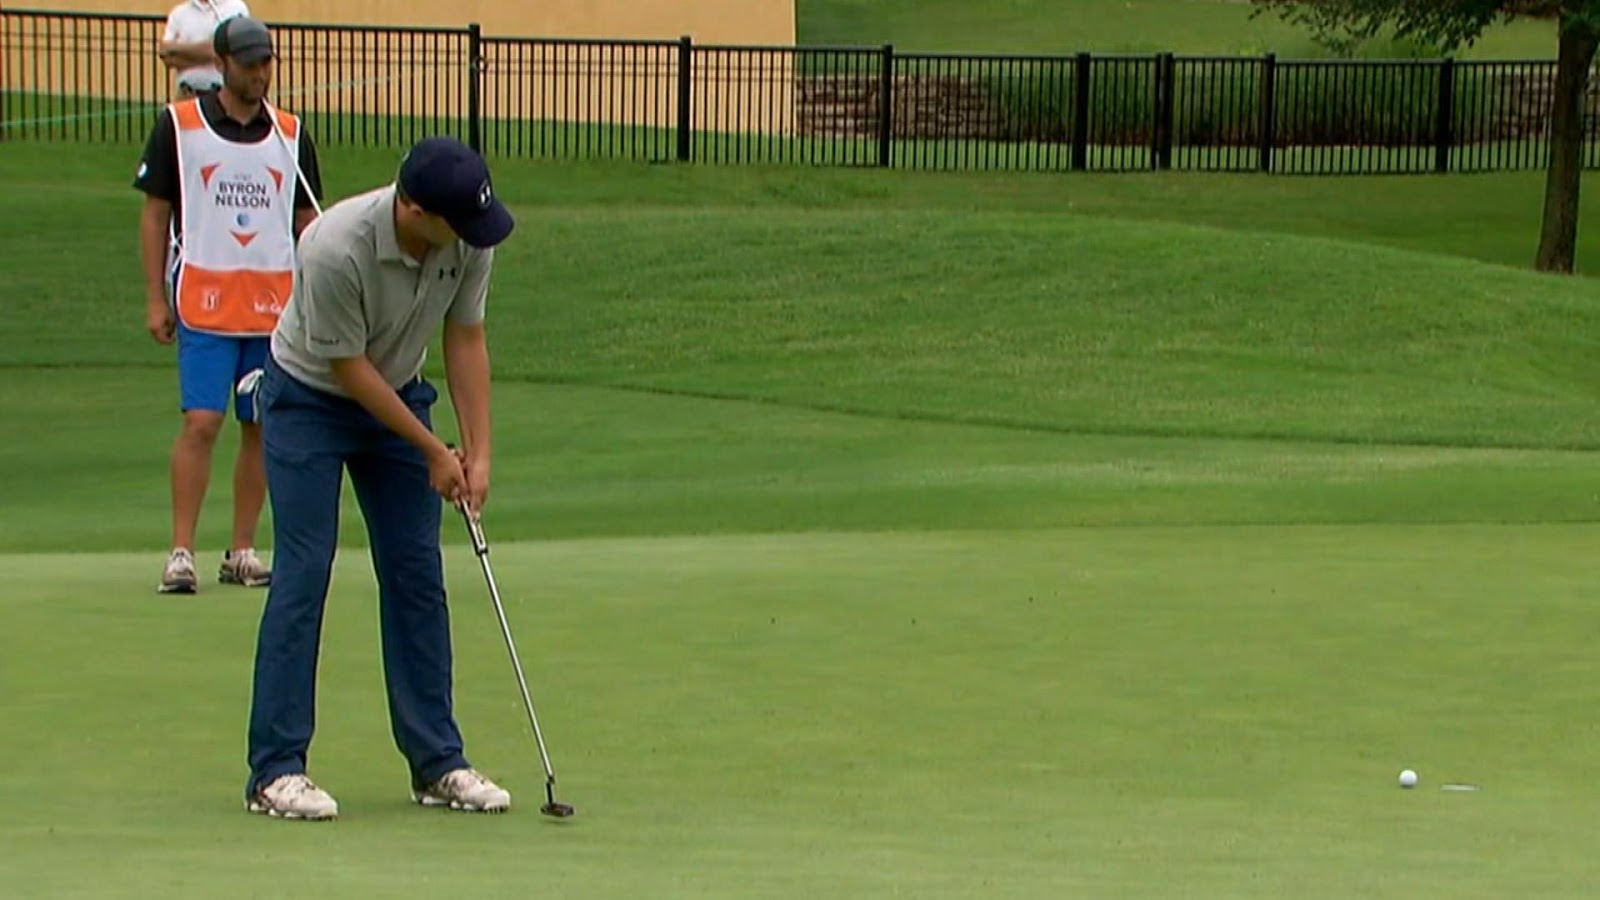 Jordan Spieth putts left hand low but should you? GOLF  - jordan spieth putter grip